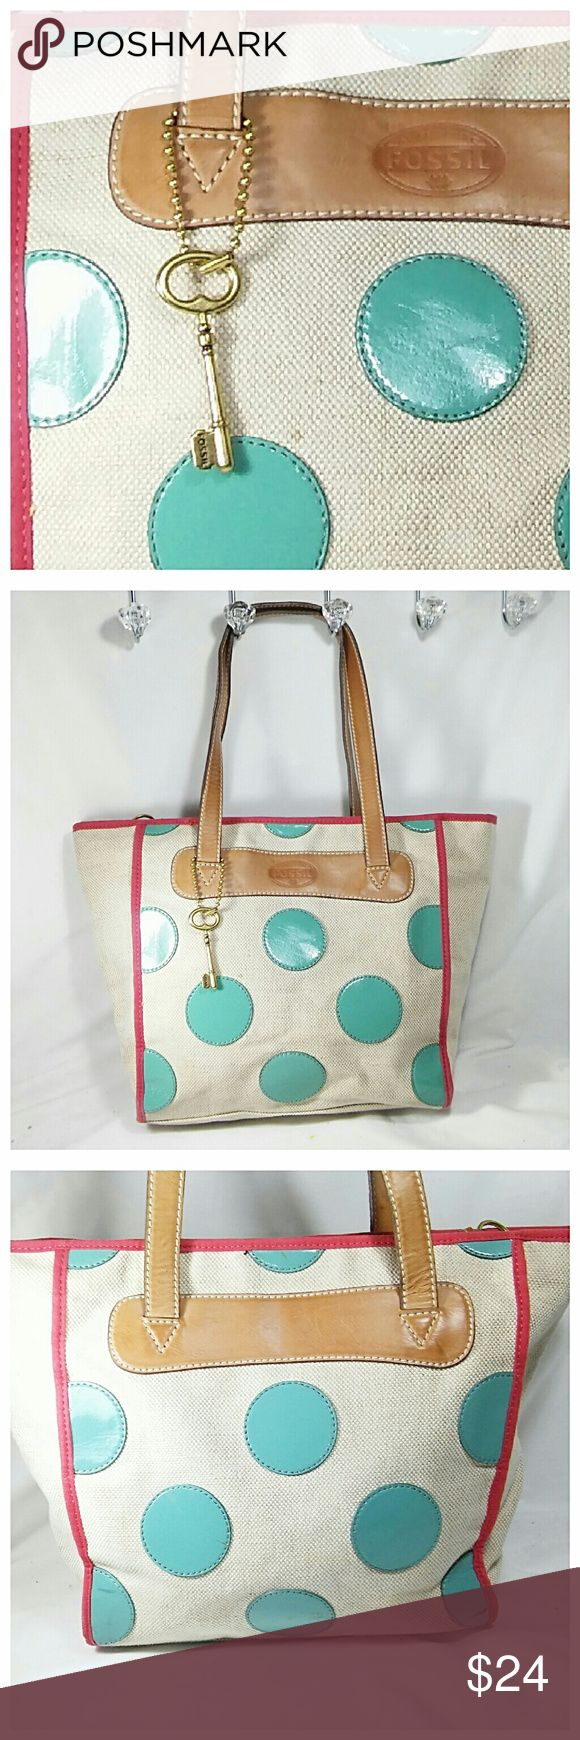 """Large Fossil Polka Dot Tote Sturdy canvas bag with fun teal polka dots. This bag is roomy enough for all of your essentials and then some. As you can see there are obvious blemishes, but it's in good shape overall. Measures 11"""" H x 10.5"""" L x 4"""" W + 9"""" strap drop. 💥 Reasonable offers accepted 💥 Fossil Bags Totes"""